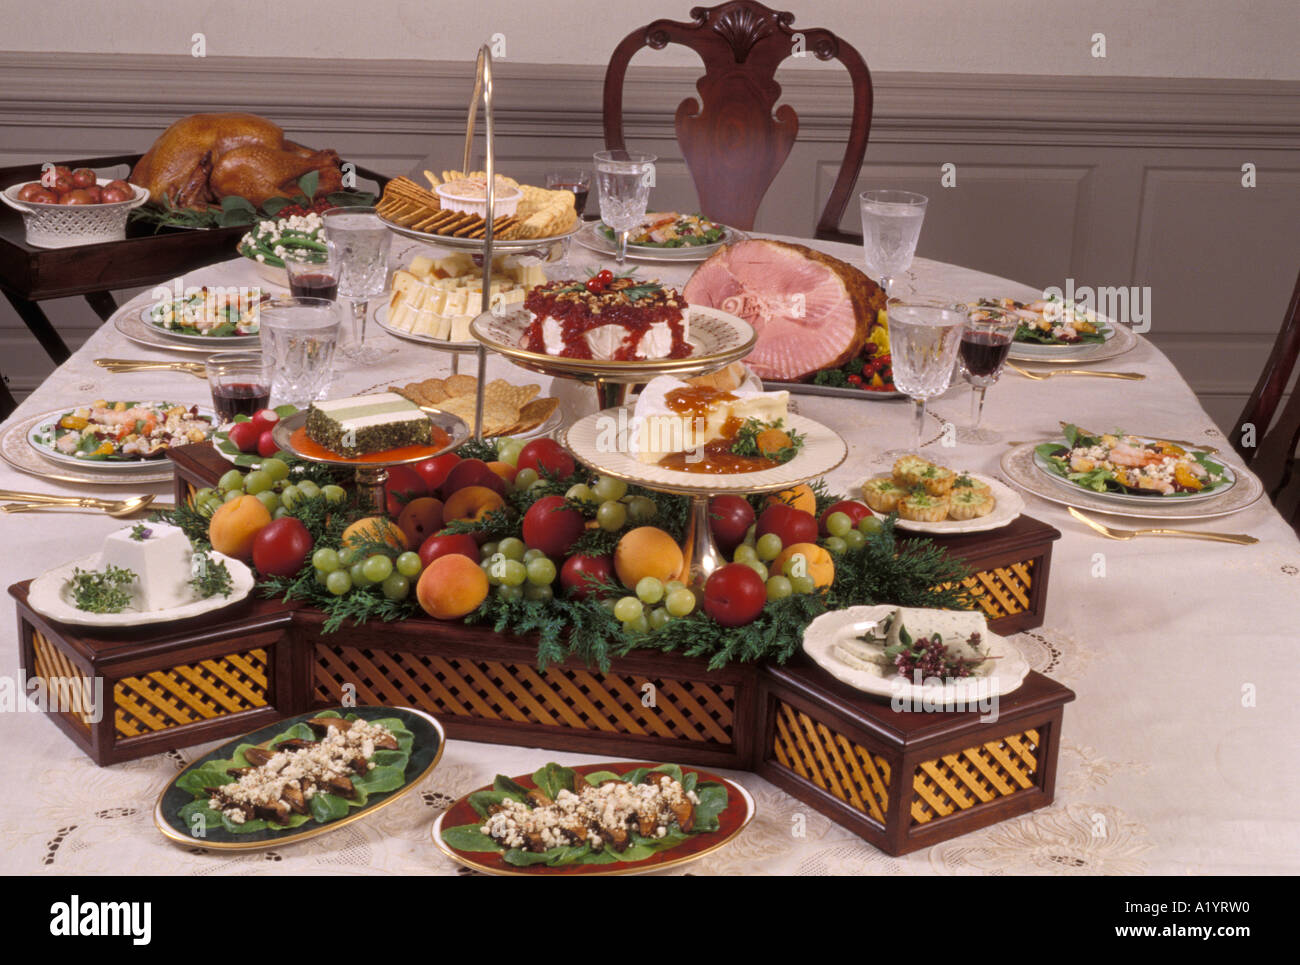 ... watchthetrailerfo Family gathering sunday holiday style formal dinner table setting family gathering sunday holiday style formal dinner ... & Buffet Style Table Setting Images - Table Decoration Ideas